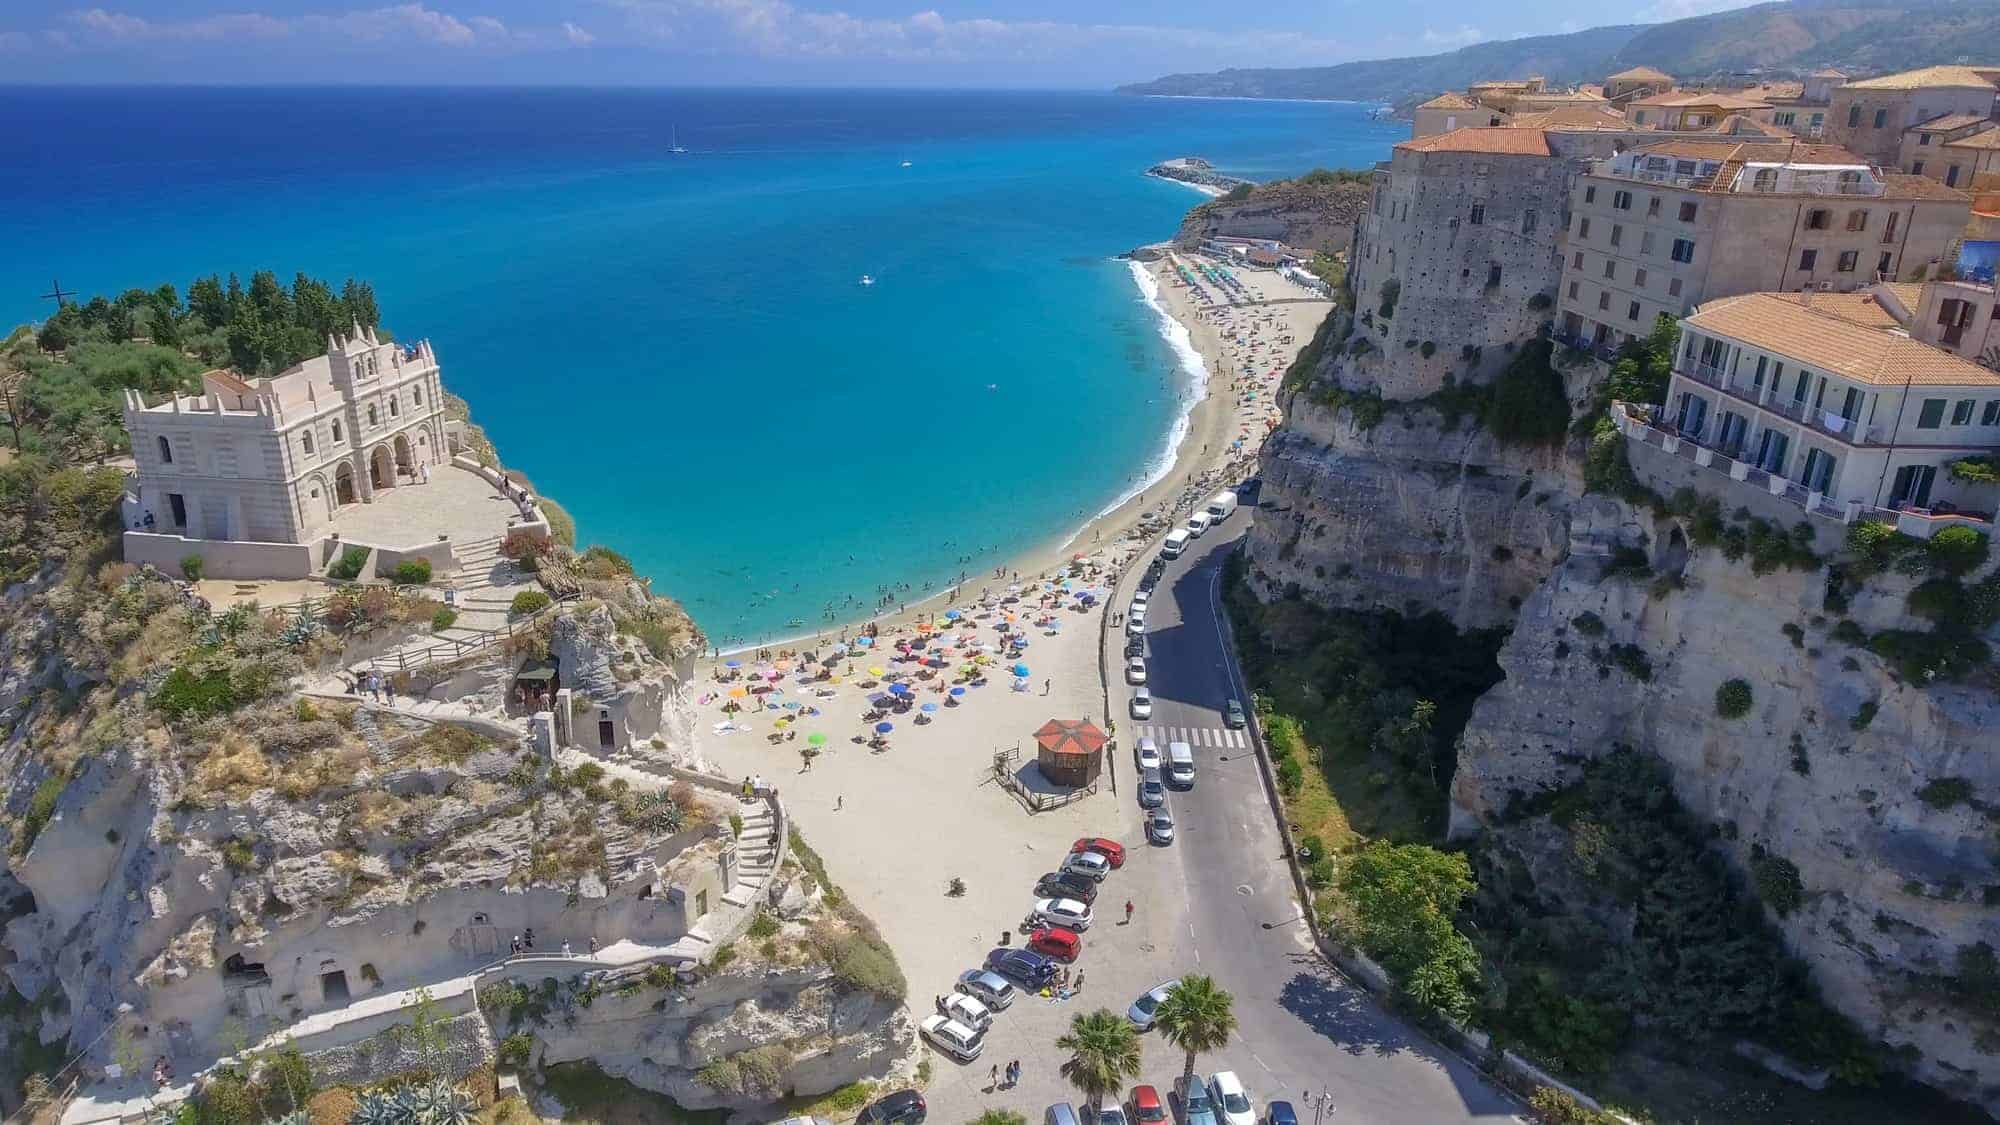 Tropea coastline and beaches in summer, Calabria - Italy.